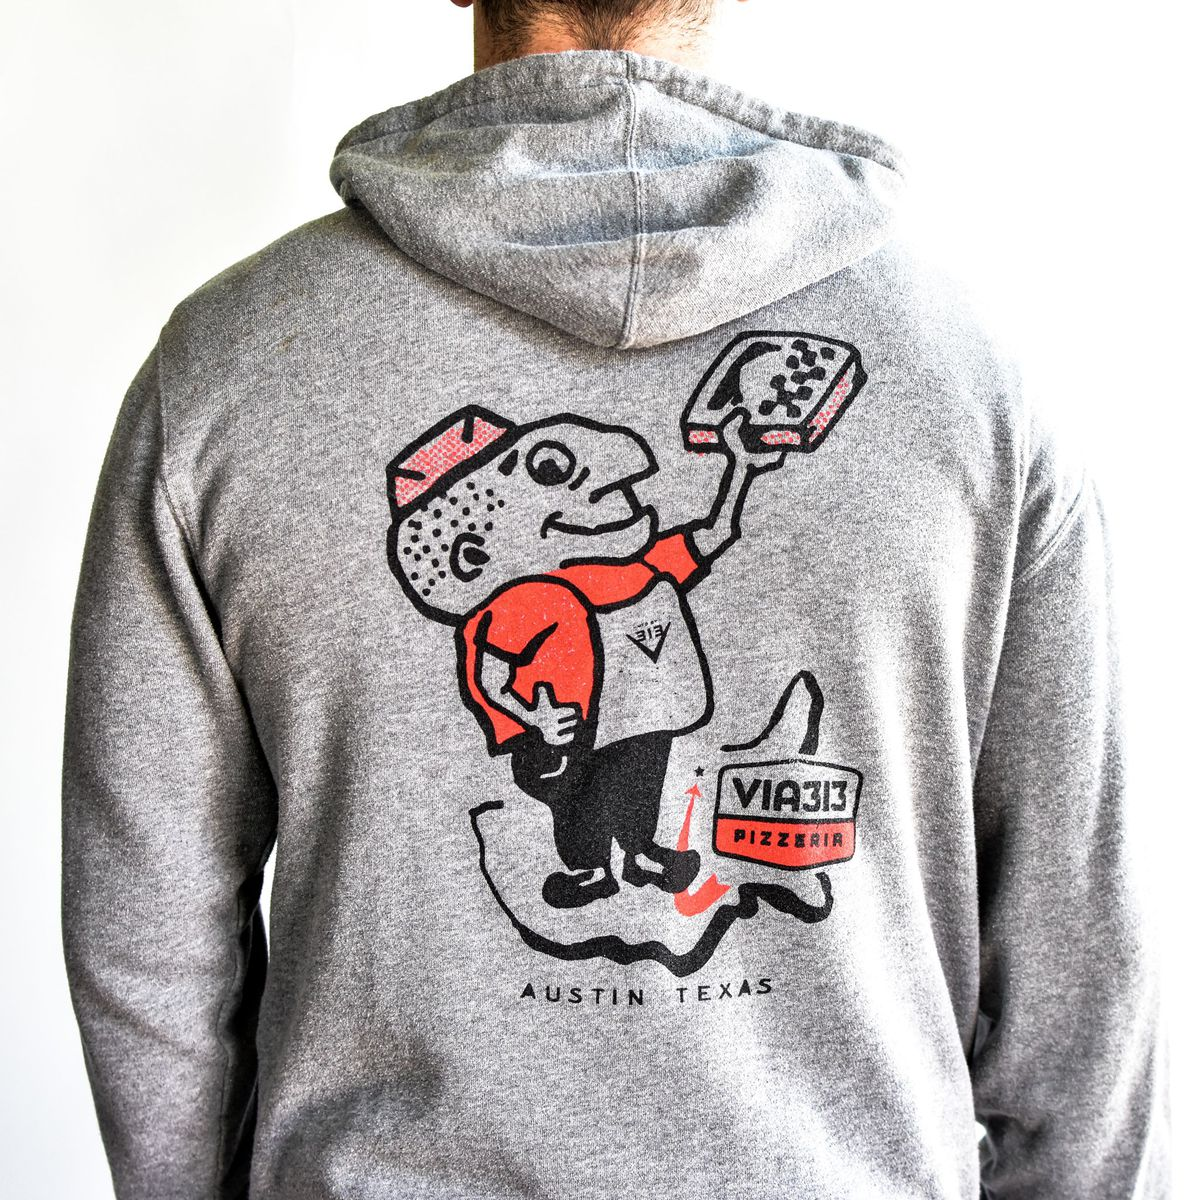 A hoodie from Via 313